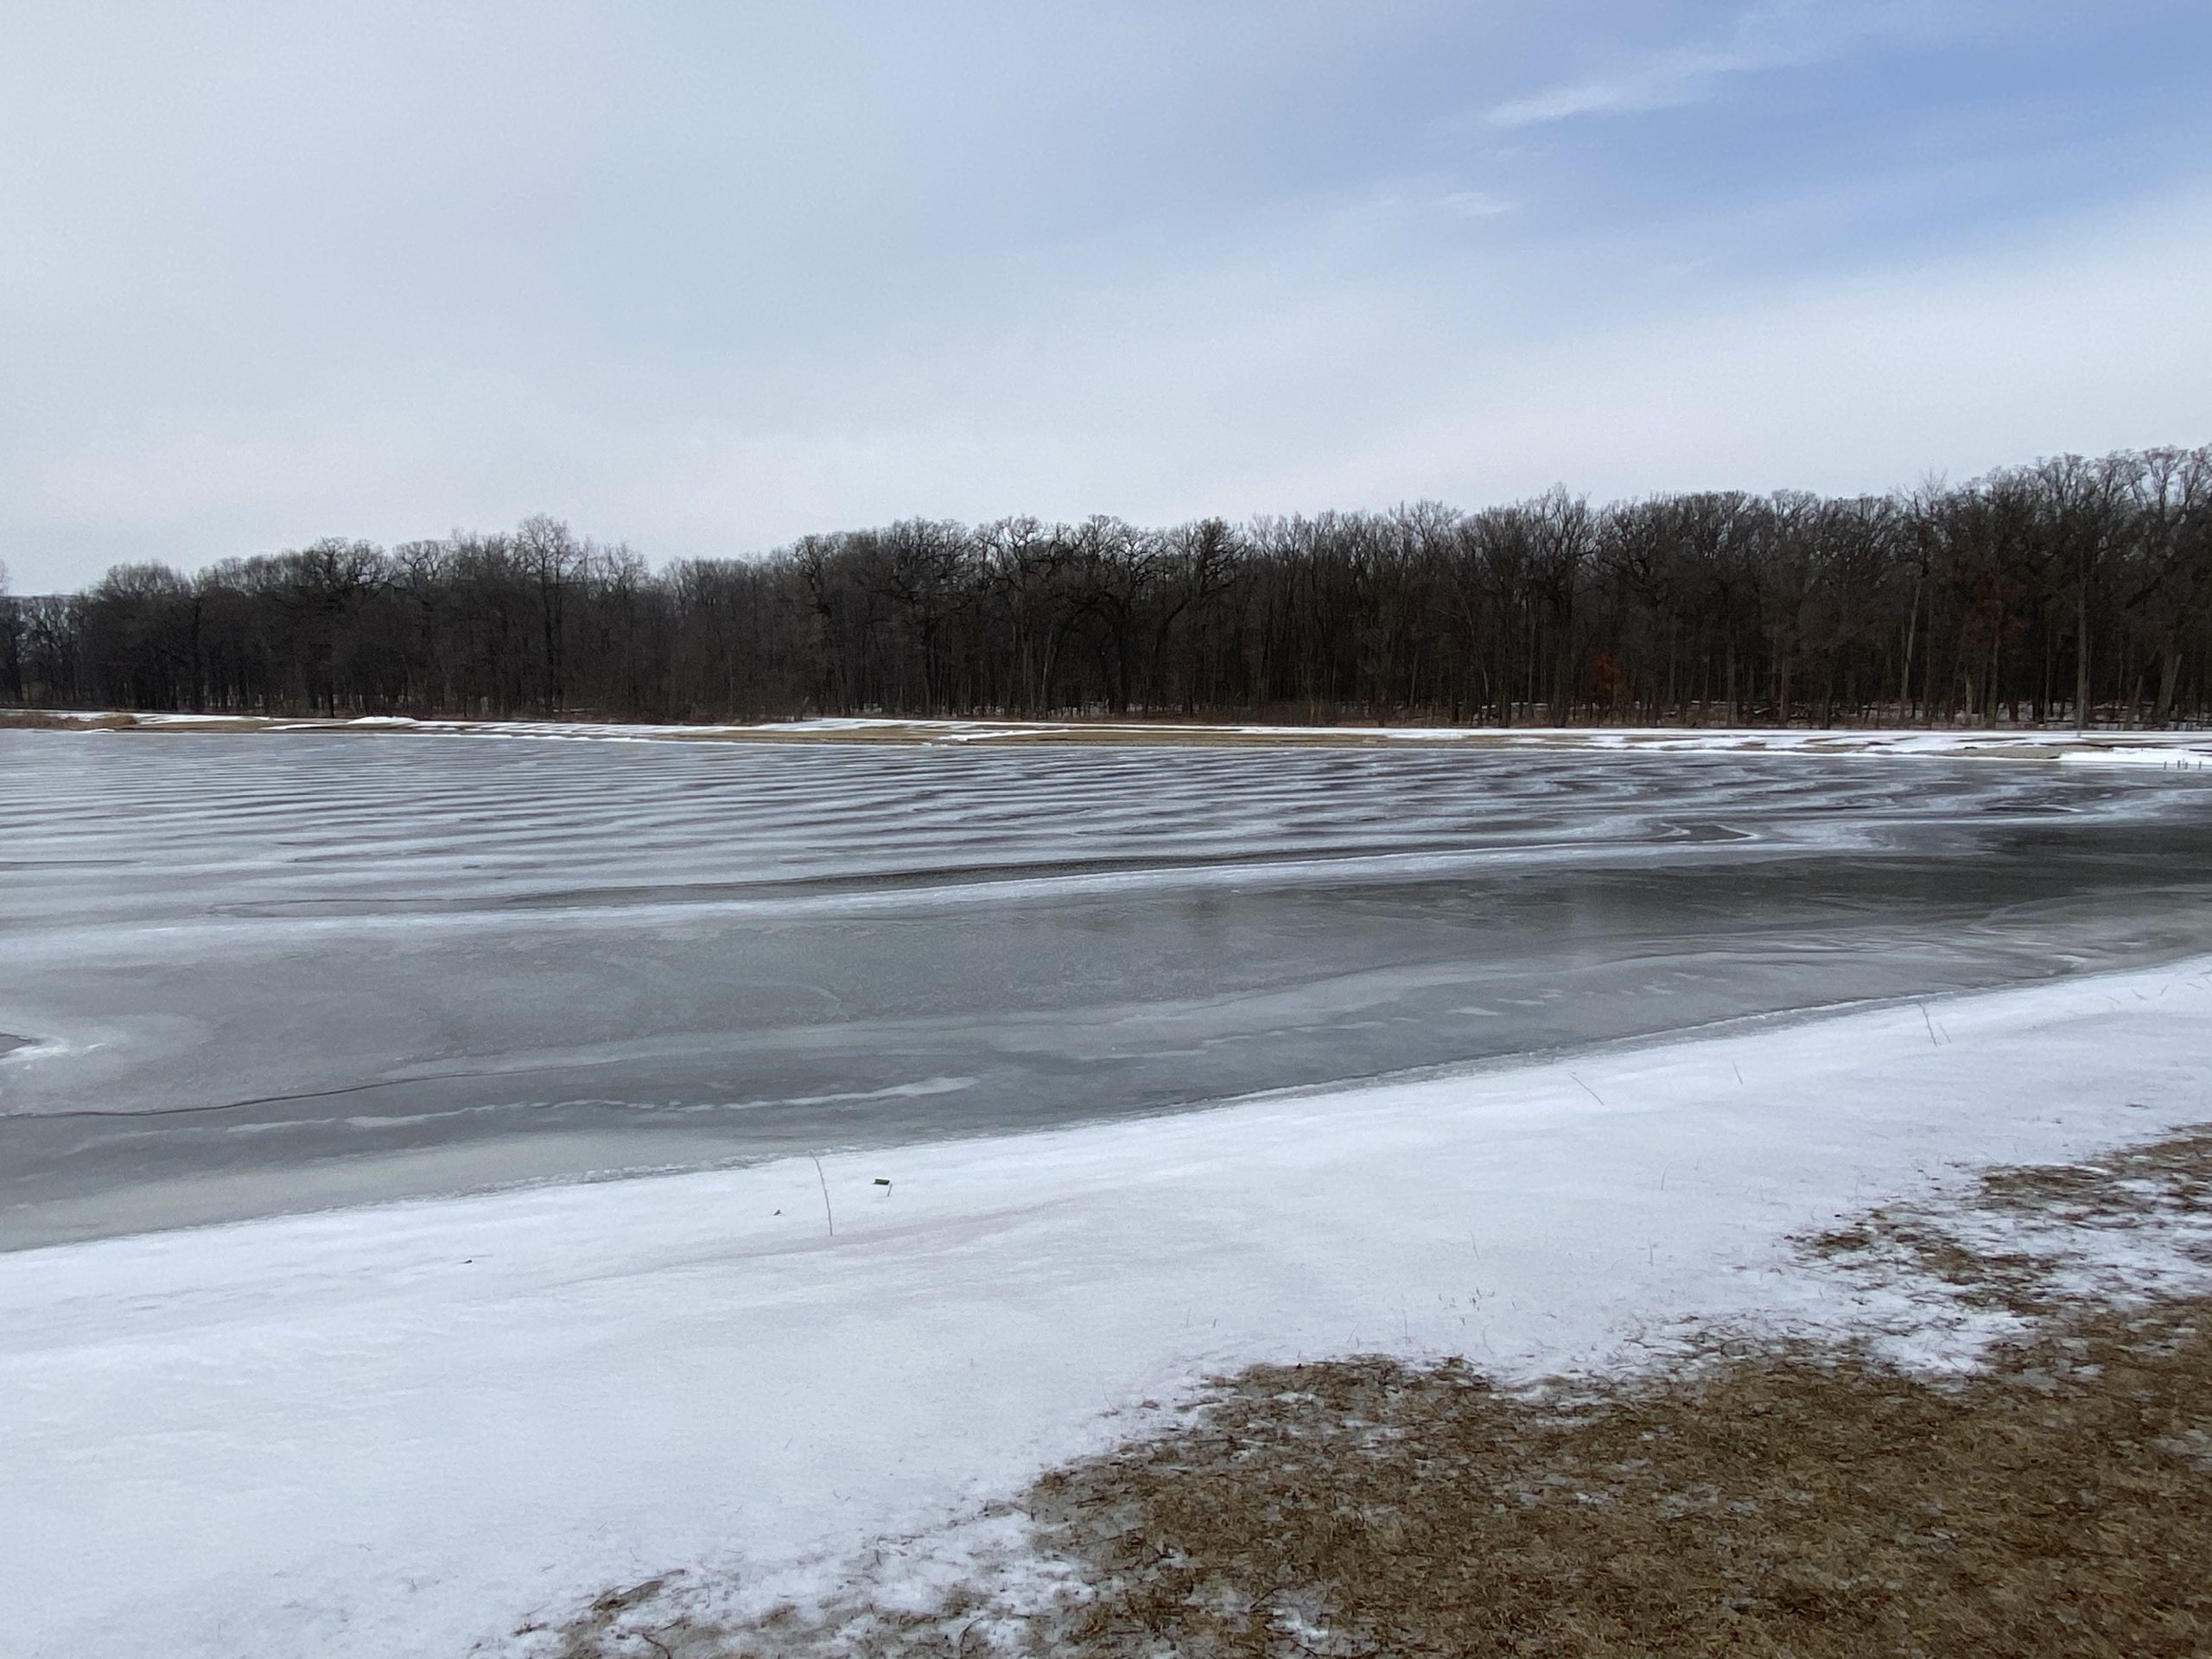 (3/4) Winter conditions produce a snowy shore. nature, landscape, winter, snow, lake, water Photo: Michael Tartaglia